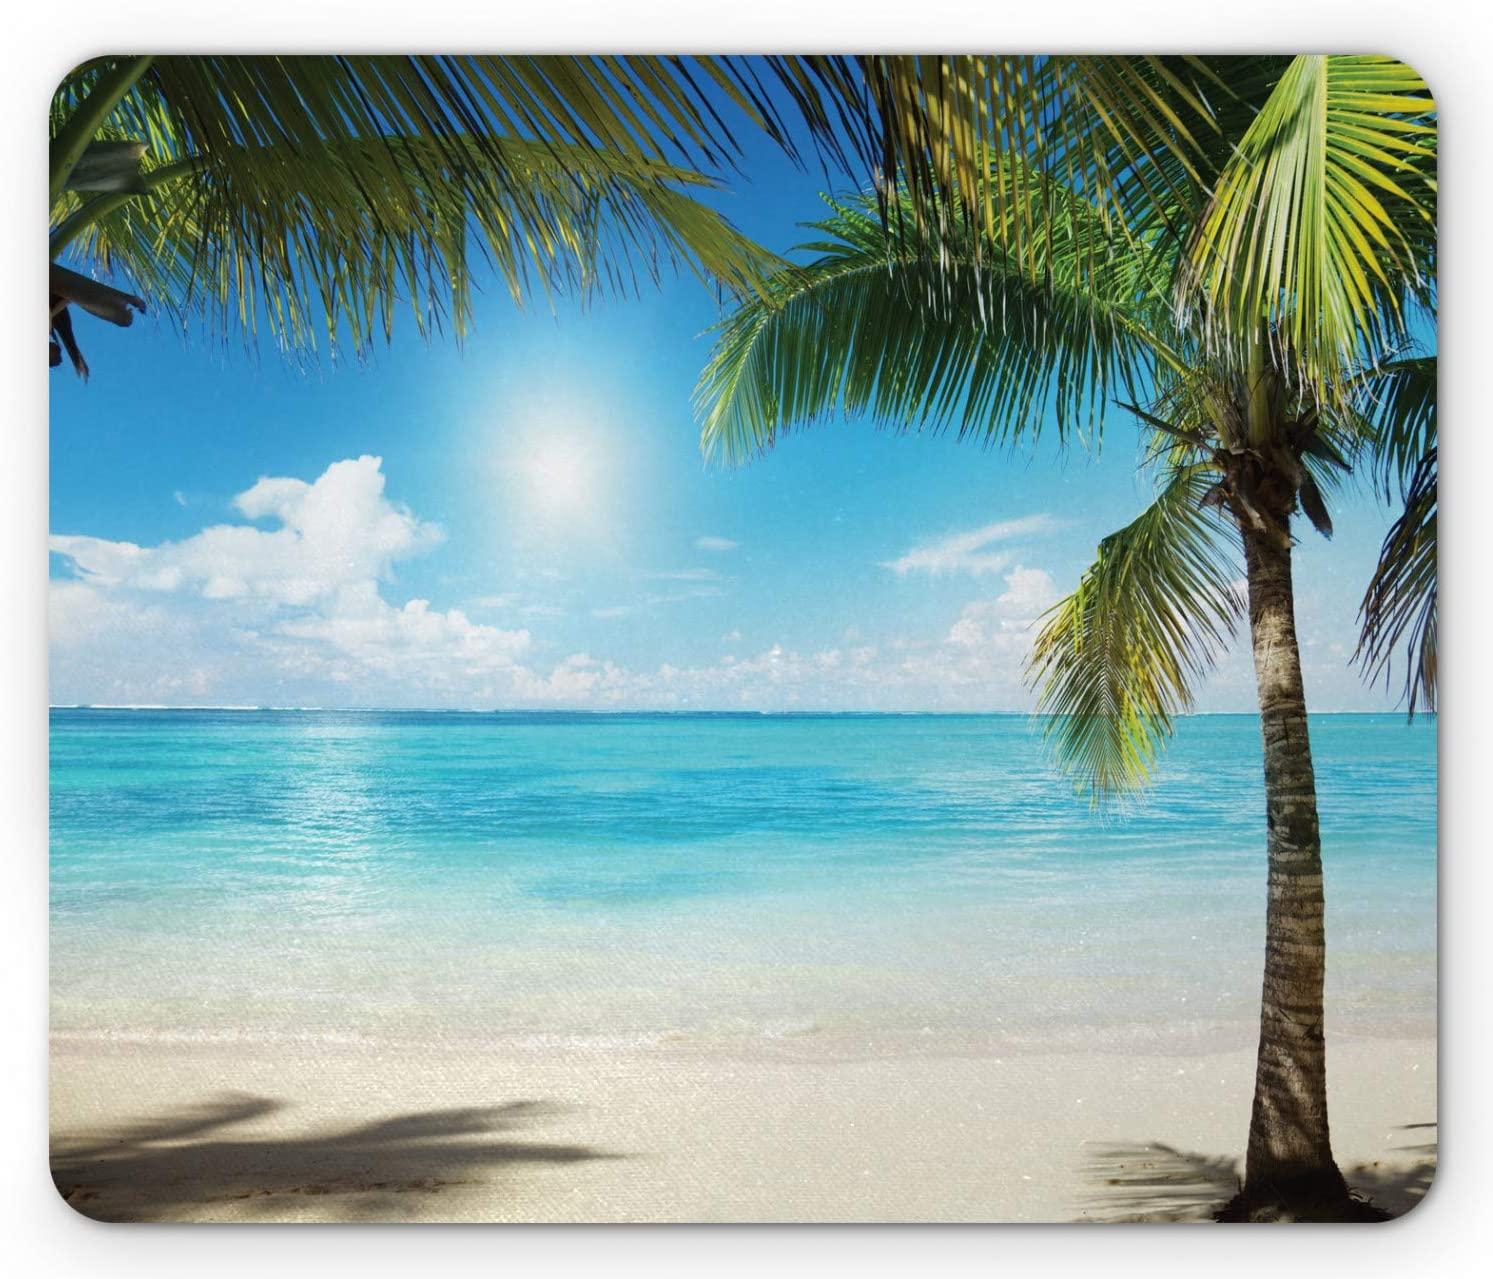 Ambesonne Tropical Beach Mouse Pad, Coconut Palm Trees Shadows on Caribbean Shore Summer Plants Idyllic, Rectangle Non-Slip Rubber Mousepad, Standard Size, Coconut Green